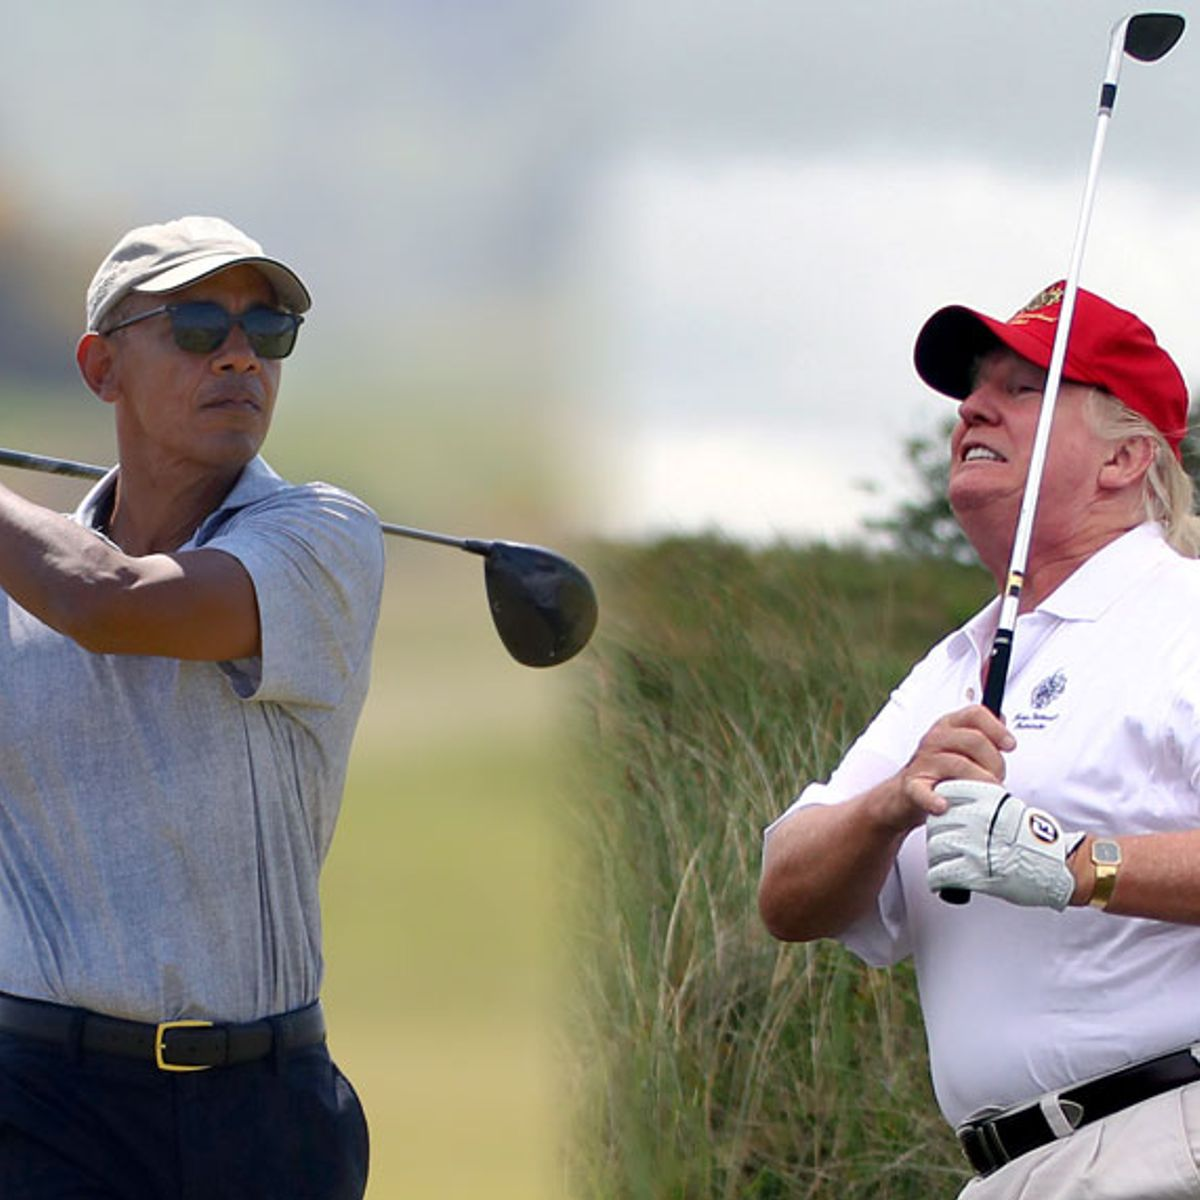 Trump Falsely Claims That He Golfs Less Than Obama During 276th Golf Course Outing As President Salon Com